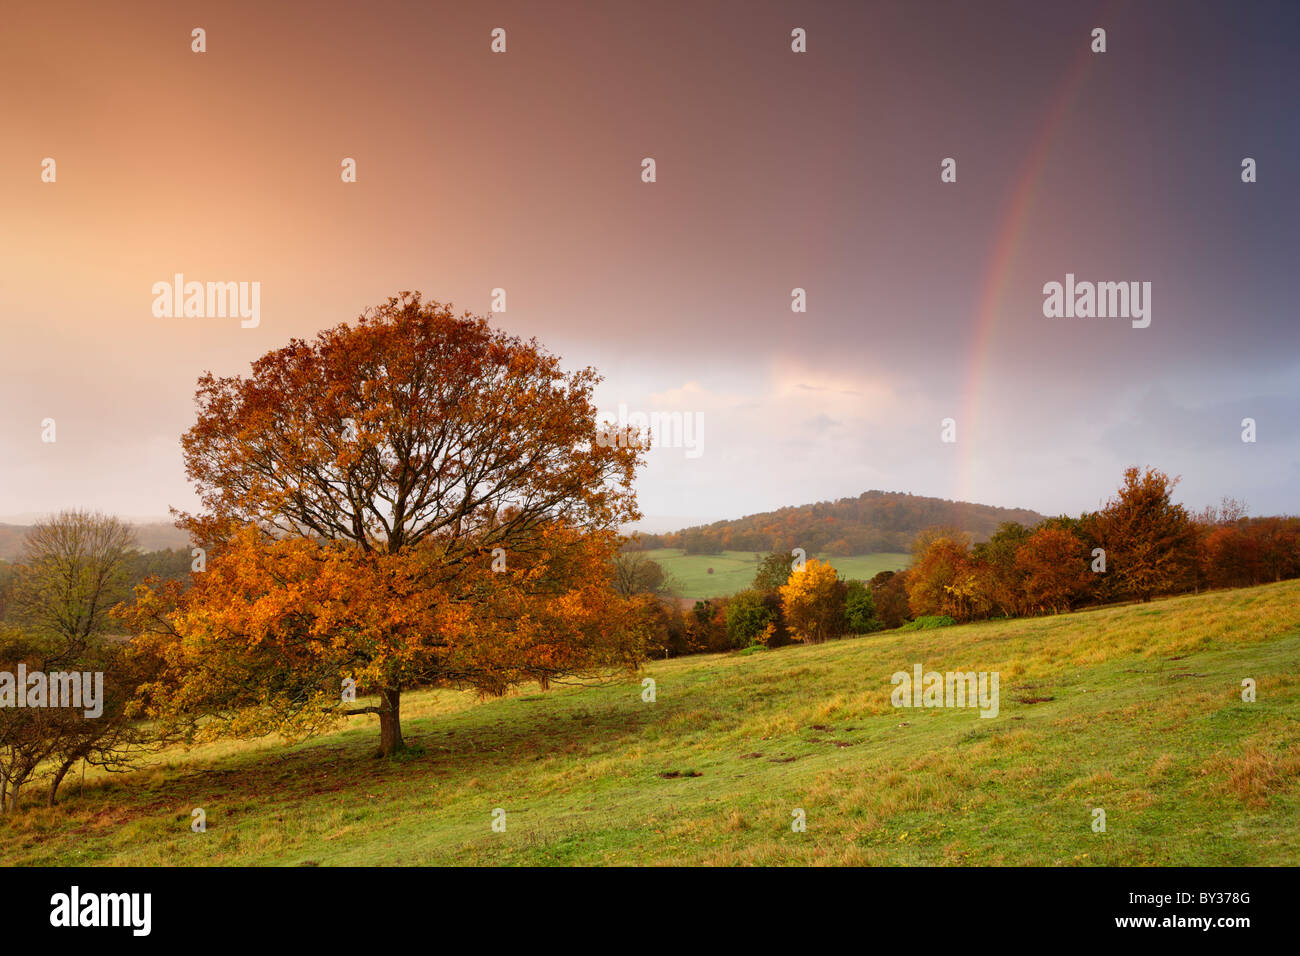 Autumn hues cover the trees, the sky fills with colour from the rising sun as rain showers pass overhead and create - Stock Image